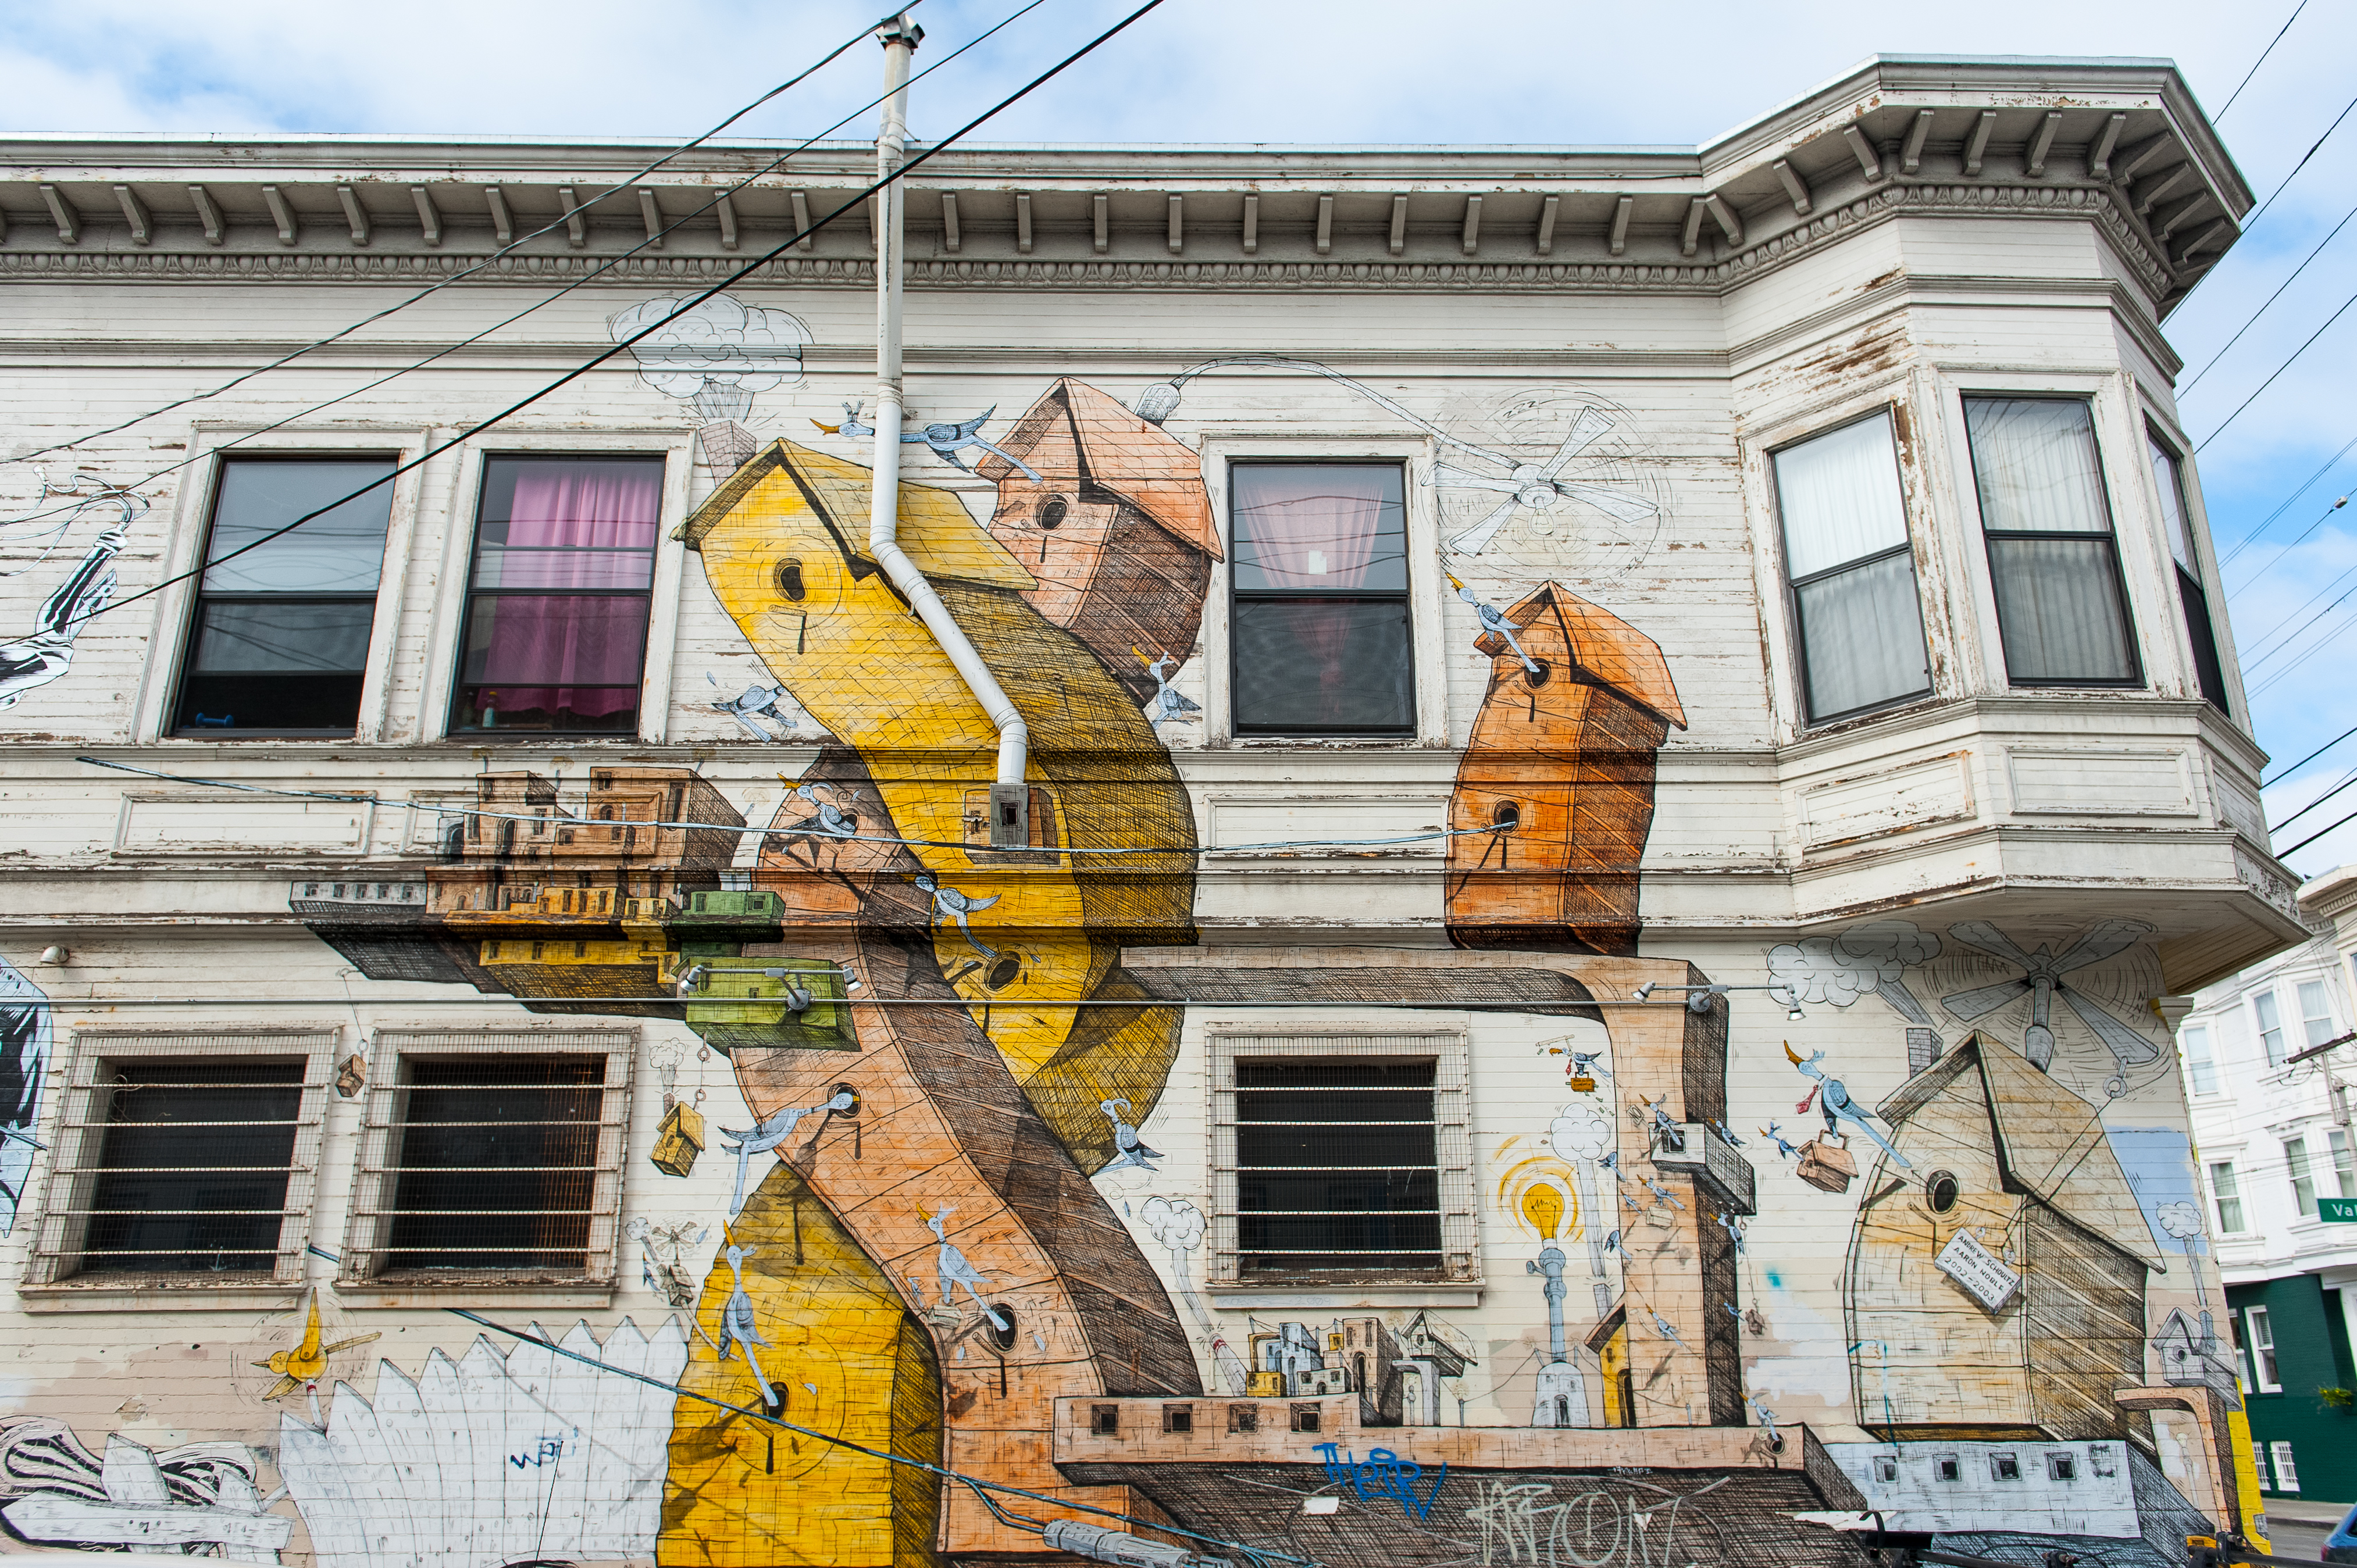 A mural on the side of a Victorian building depicting birdhouses in twisted shapes.